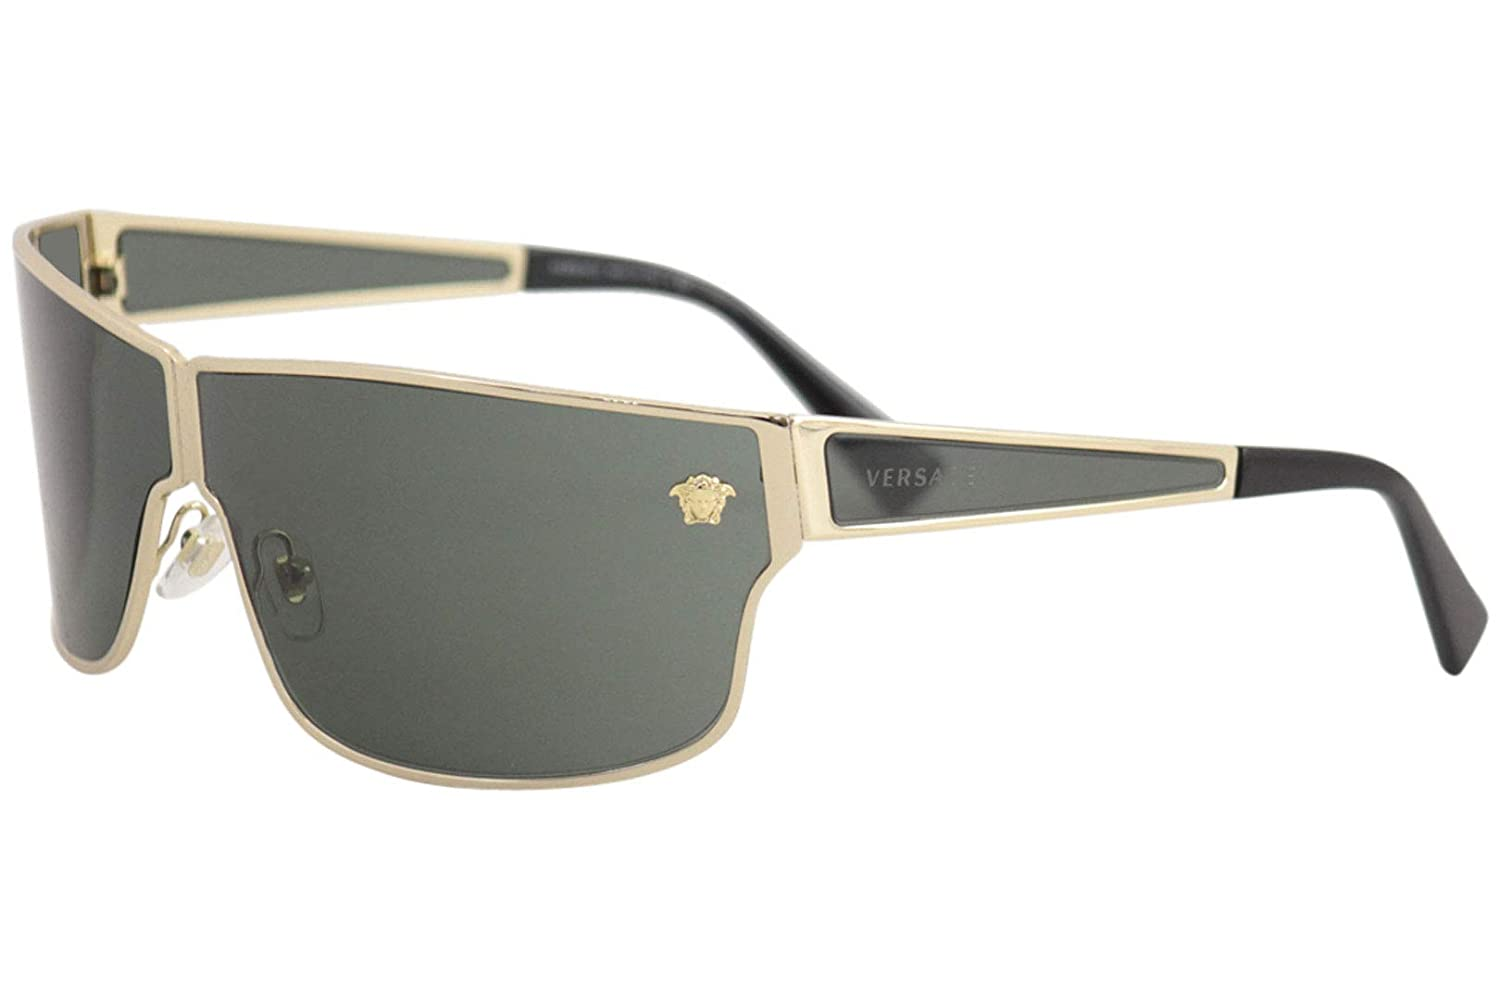 Versace Men VE2206 72 Sunglasses 72mm